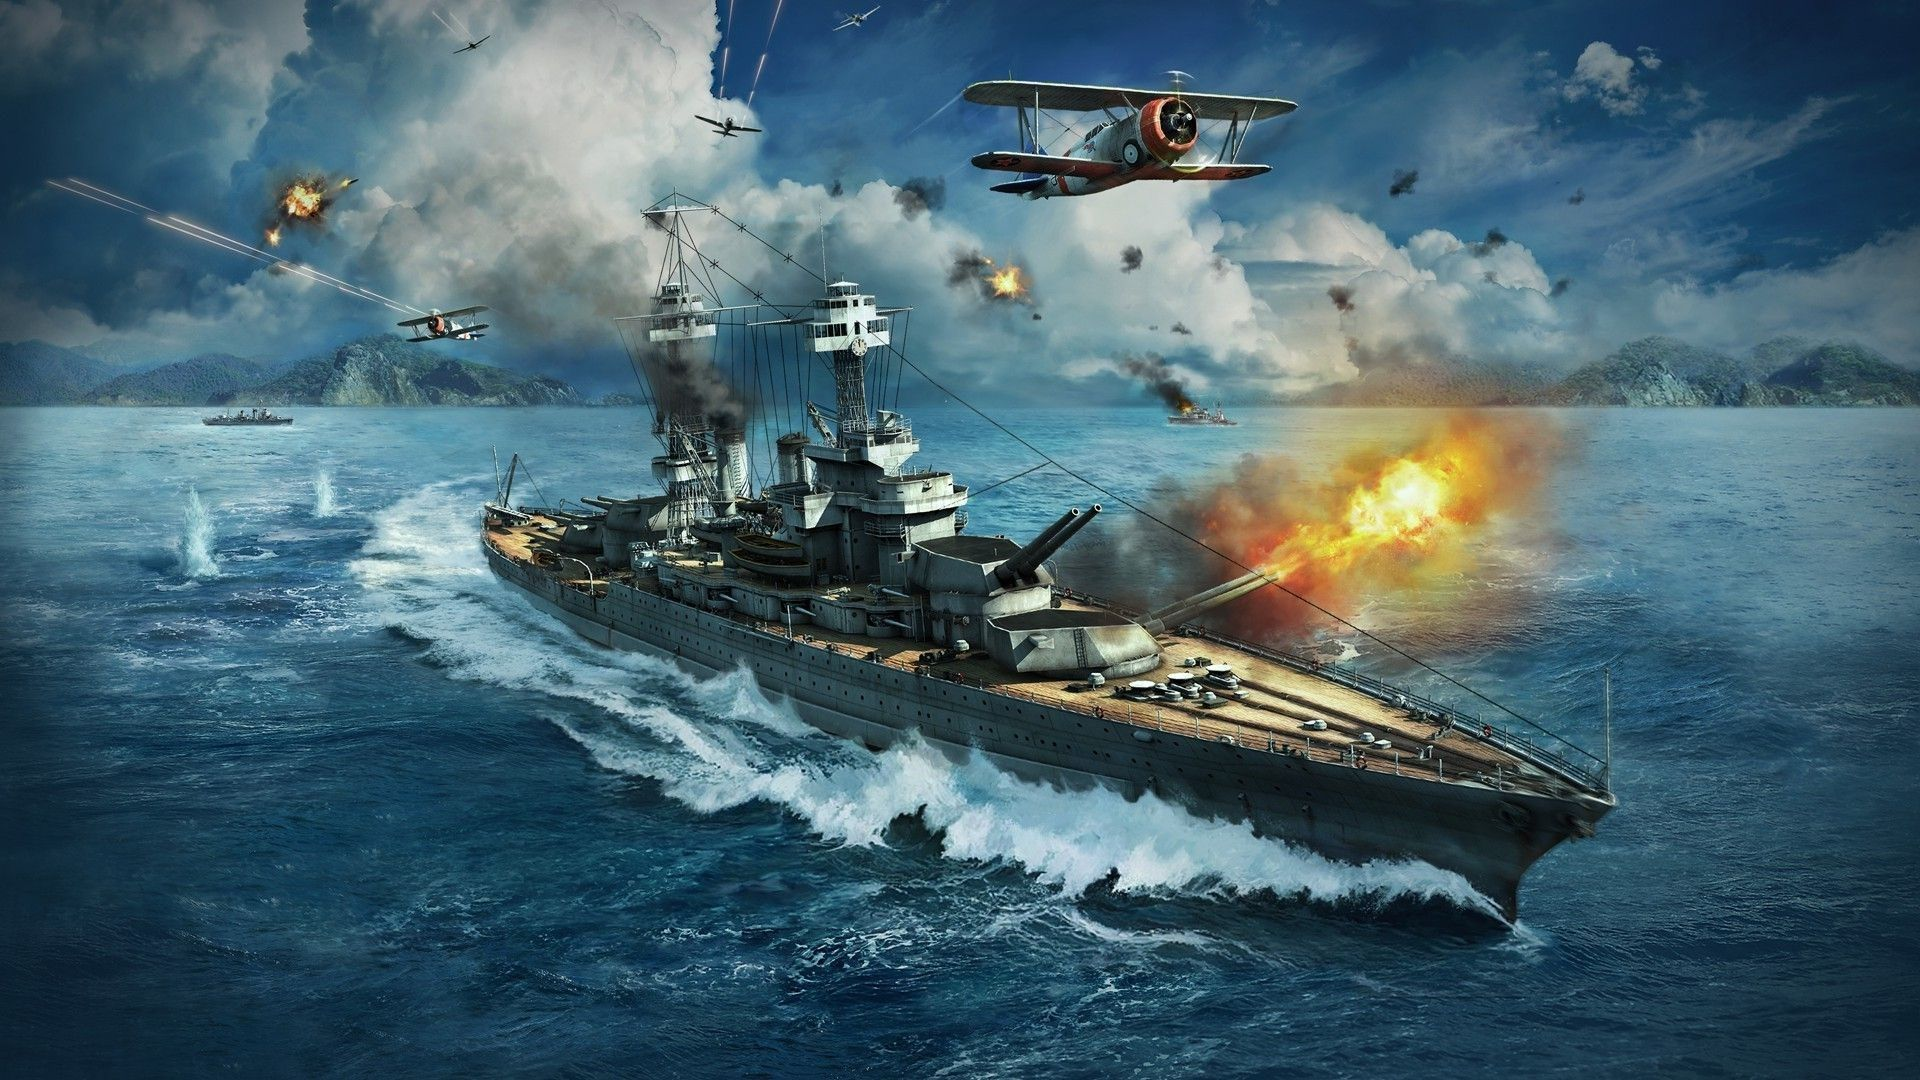 World Of Warships For Large Desktop 1920x1080 With Images